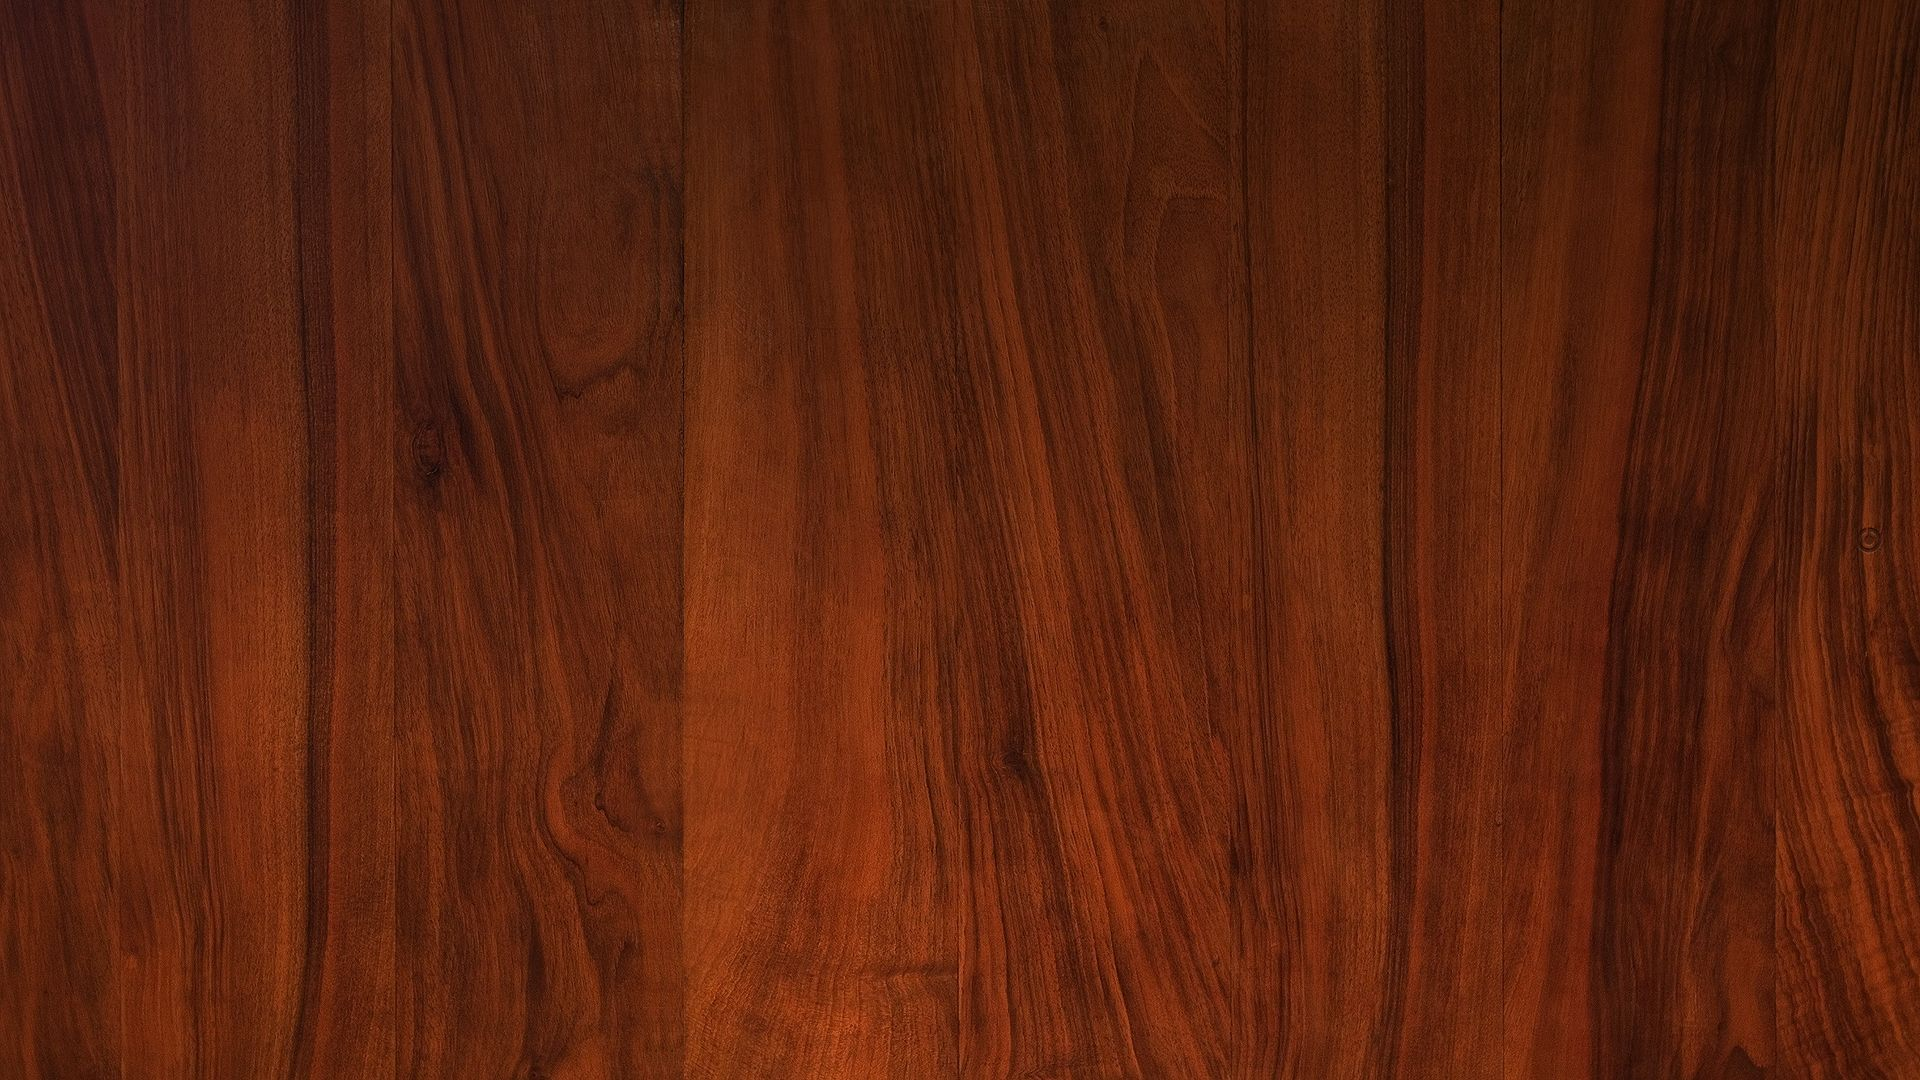 Wood Wallpaper - Wood Texture Hd (# 136784) - Descargar fondo de pantalla HD